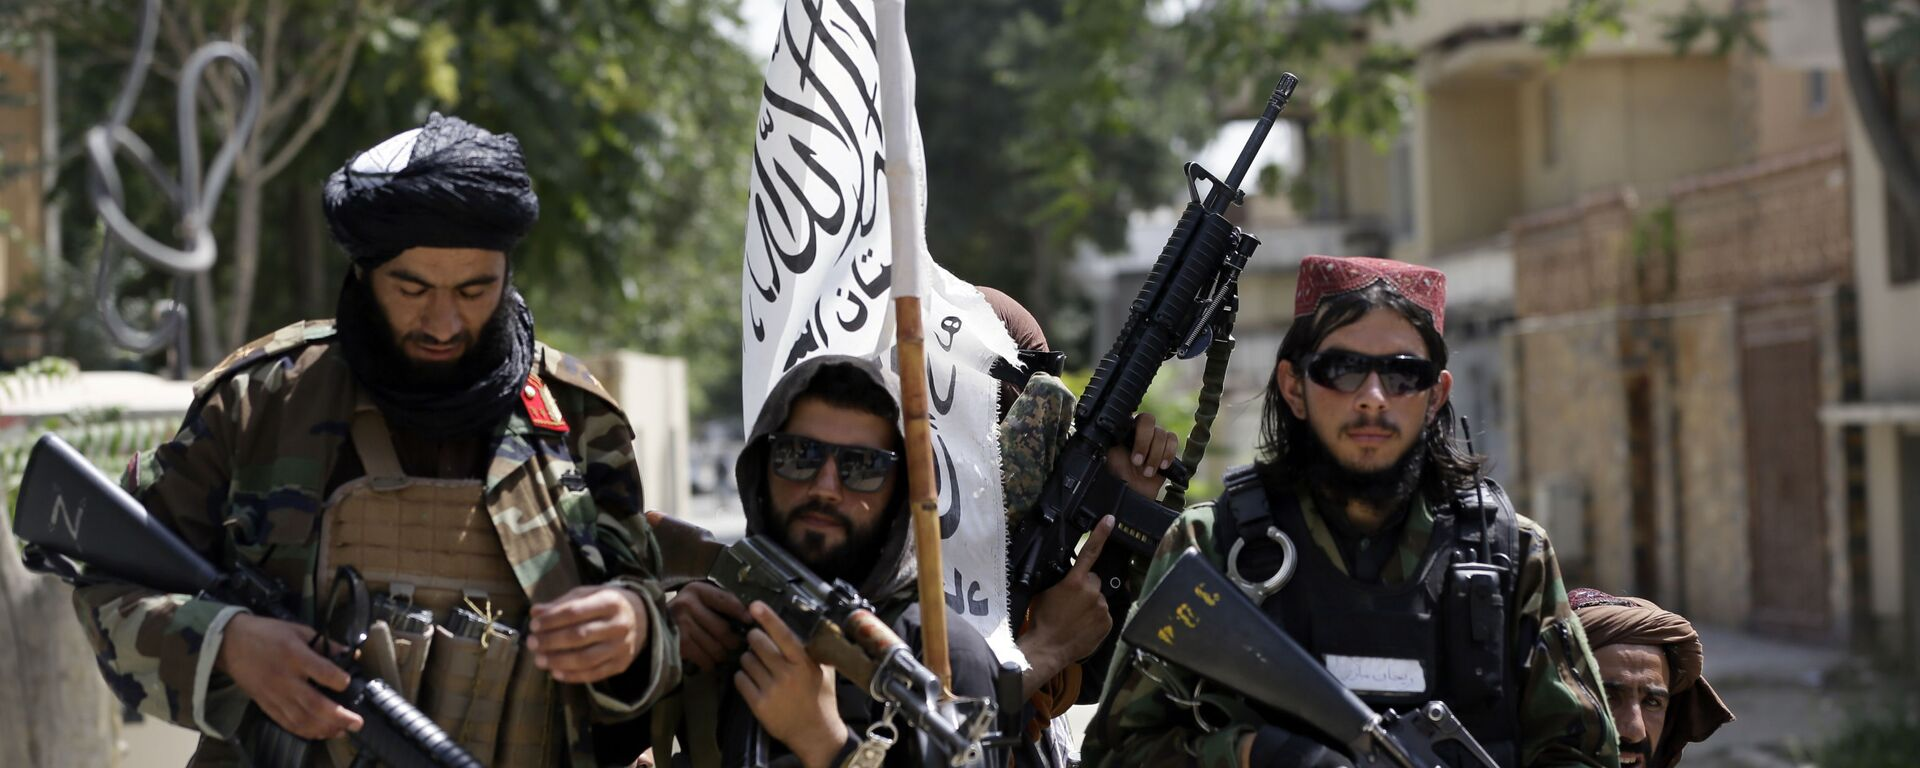 In this Aug. 19, 2021 file photo, Taliban fighters display their flag on patrol in Kabul, Afghanistan. When U.S. President Joe Biden took office early this year, Western allies were falling over themselves to welcome and praise him and hail a new era in trans-Atlantic cooperation. - Sputnik International, 1920, 25.08.2021